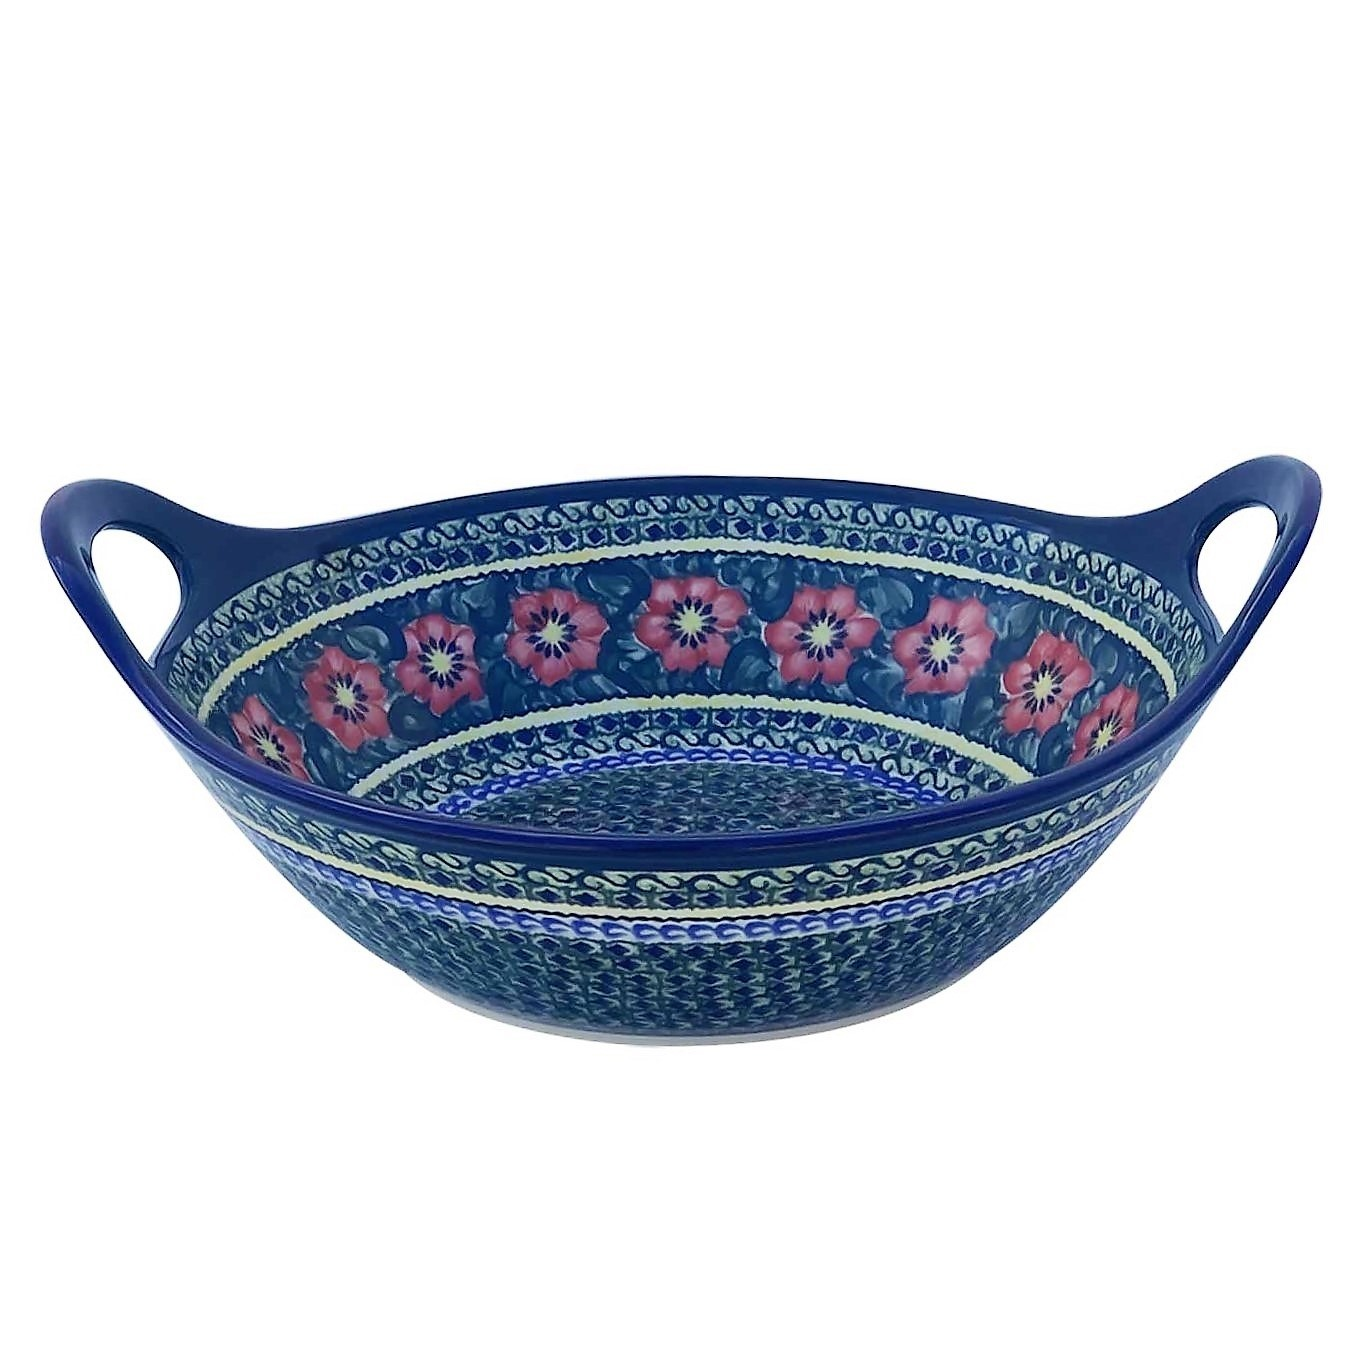 "Pottery Avenue13"" Handled Bowl in Passion - 1347- 134AR"